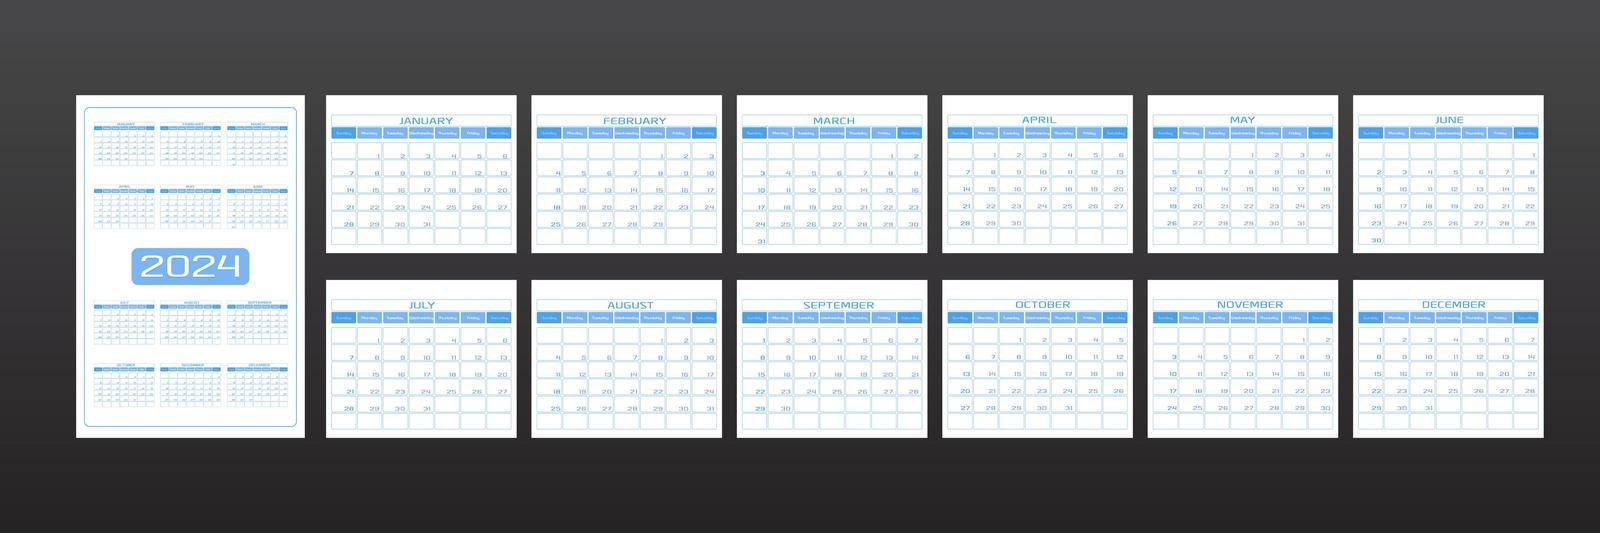 2024 calendar in minimalistic urban trendy style. set of 12 months template daily planner to-do list for every day. rounded streamlined shape, delicate light  blue color. week starts on Sunday.